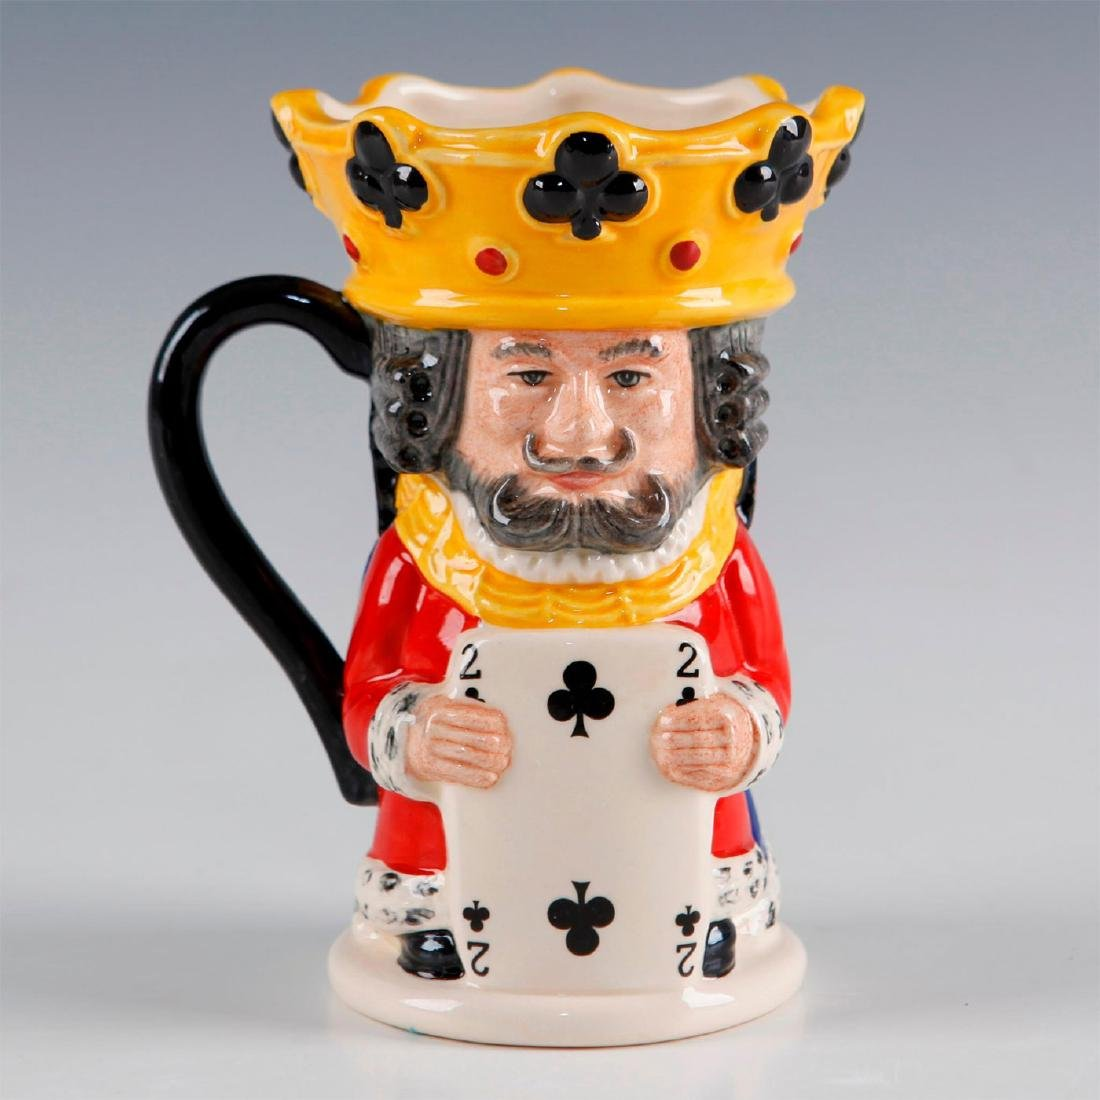 ROYAL DOULTON TOBY JUG KING AND QUEEN OF CLUBS D6999 - 3